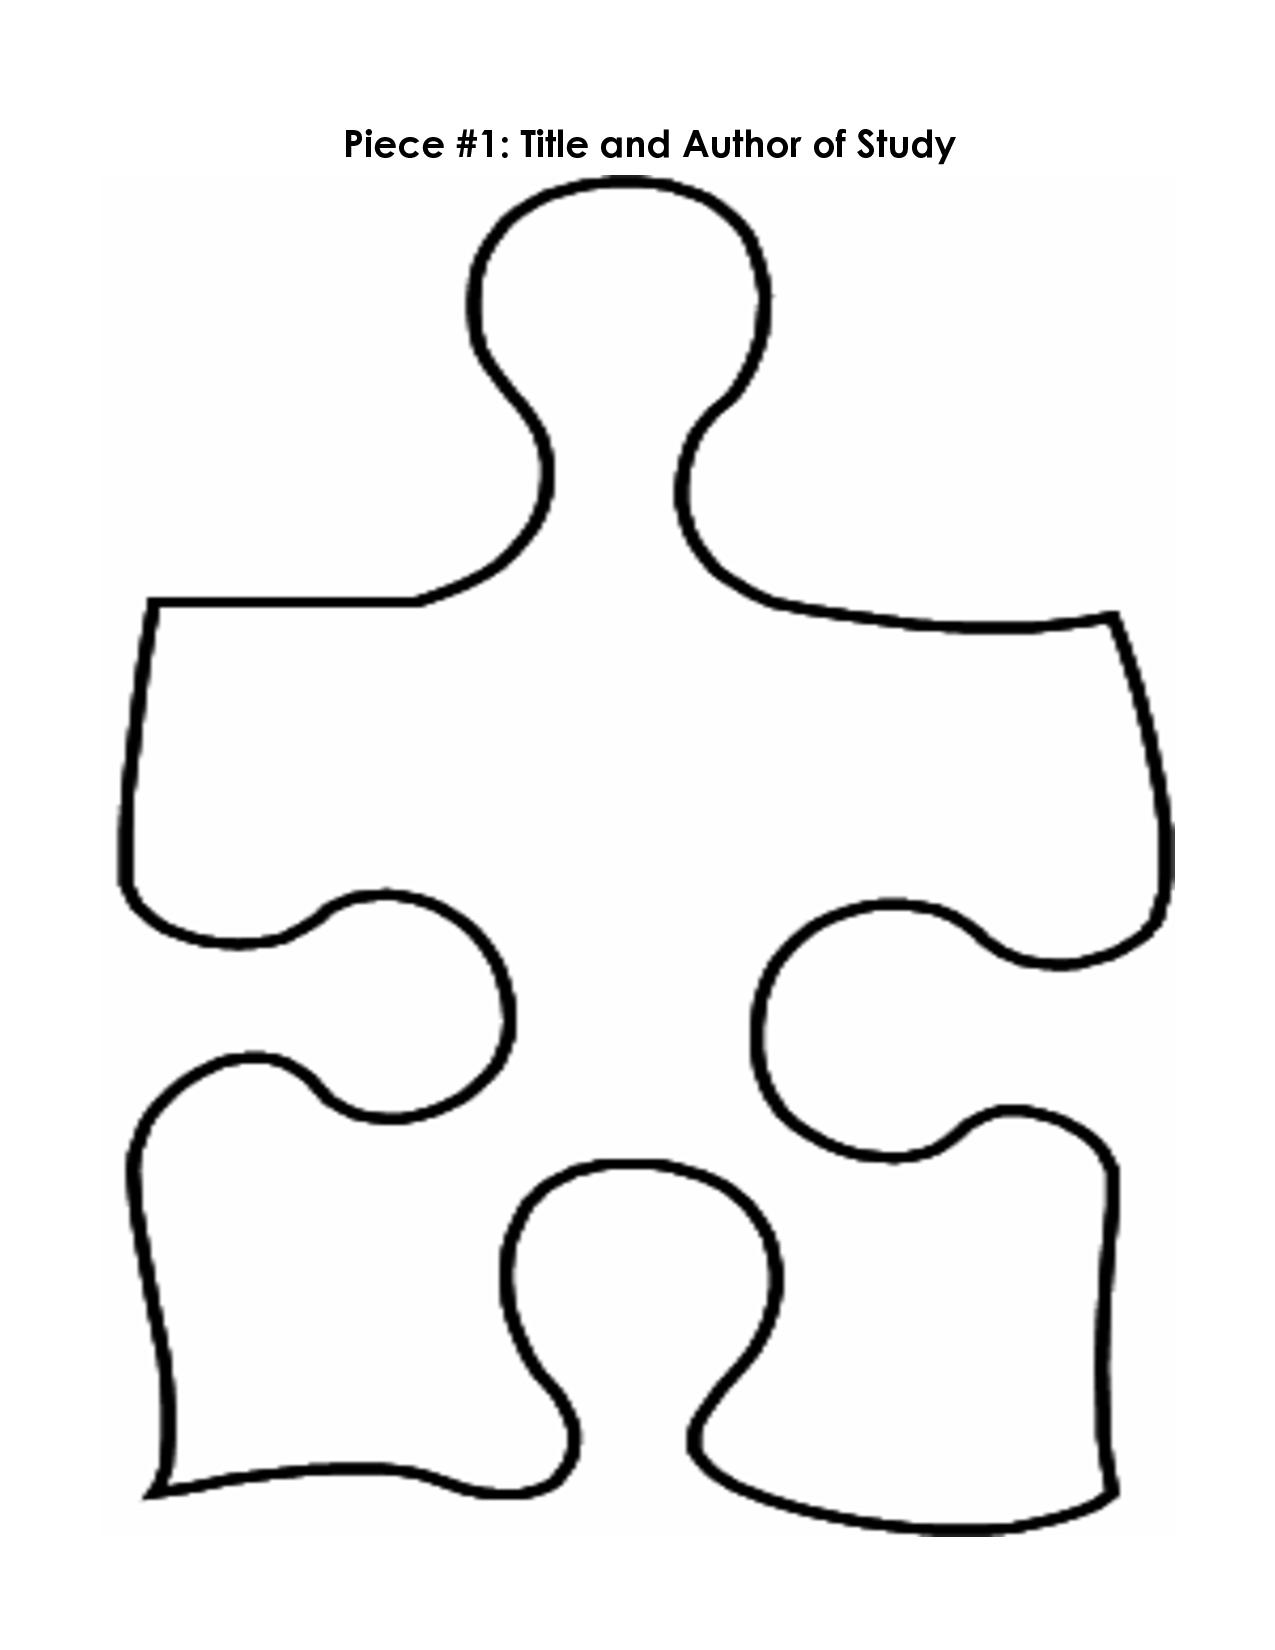 Free 3 Piece Jigsaw Puzzle Template, Download Free Clip Art, Free - 5 Piece Printable Puzzle